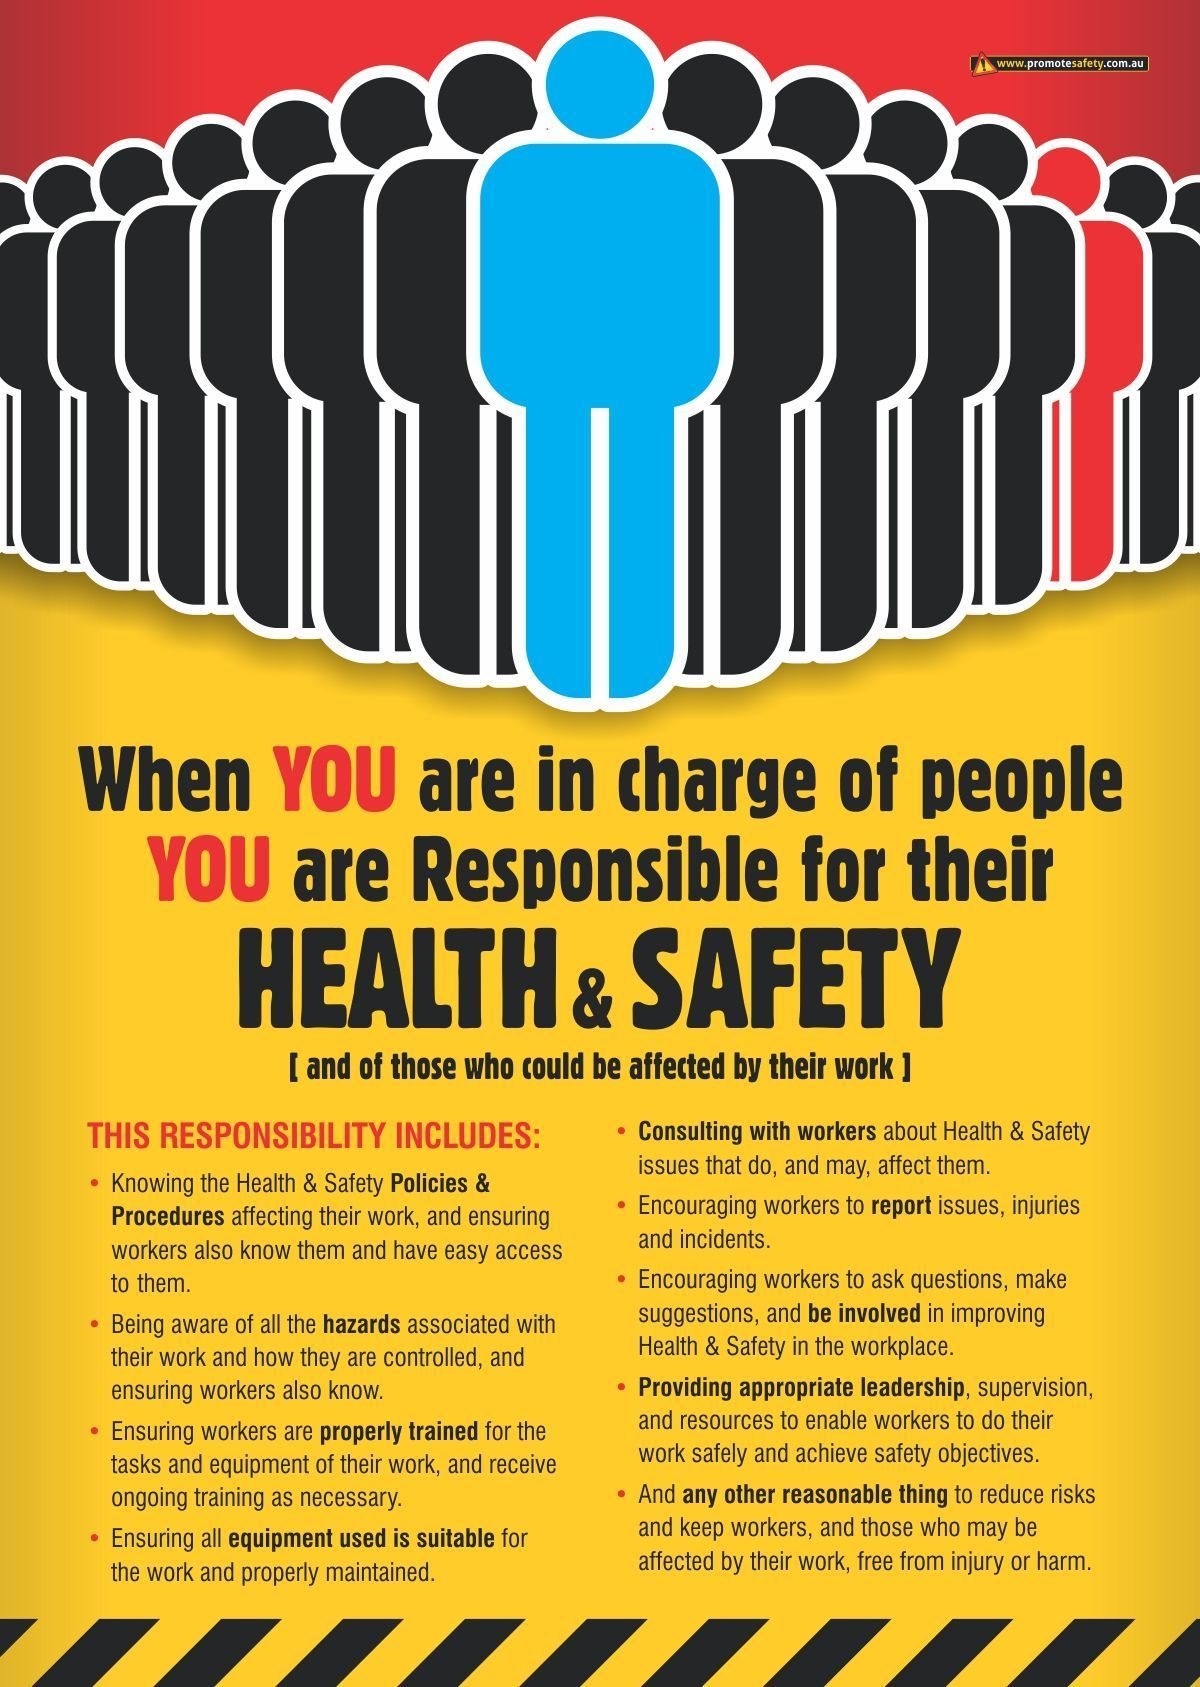 Safety Posters Resources Promote Safety In 2020 Health And Safety Safety Posters Health And Safety Poster